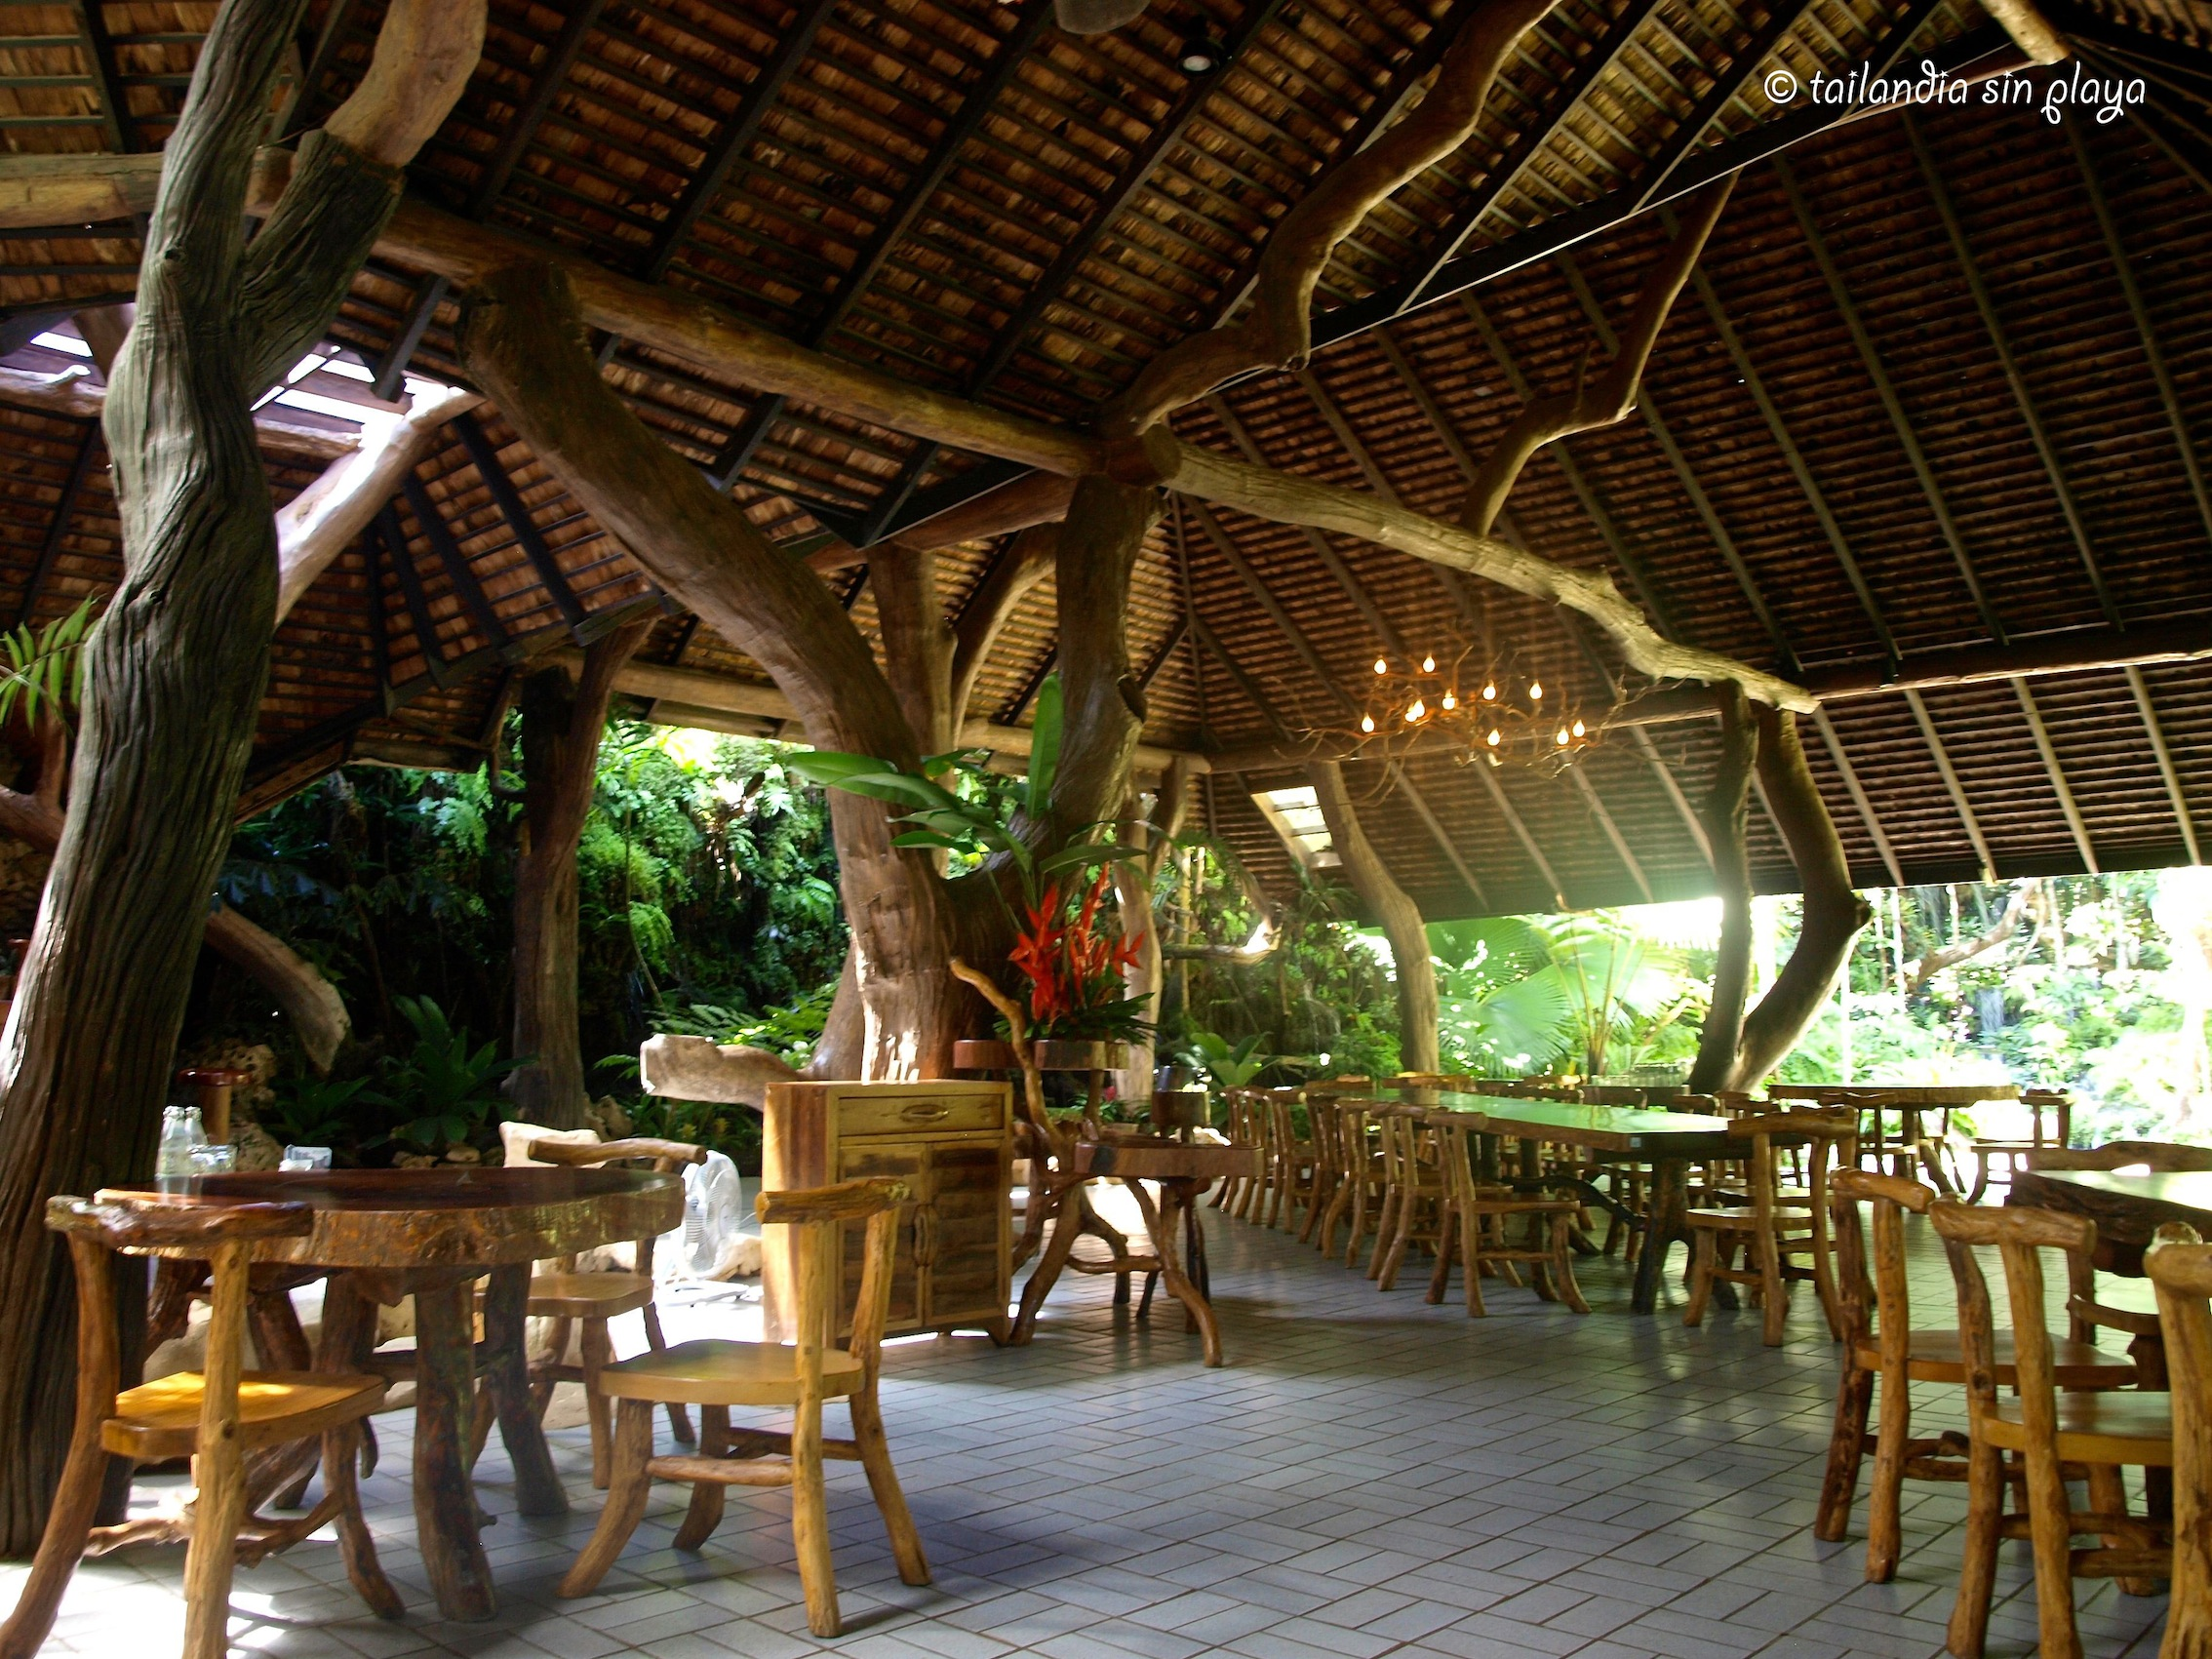 Welcome to the jungle tailandia sin playa for Restaurante madera